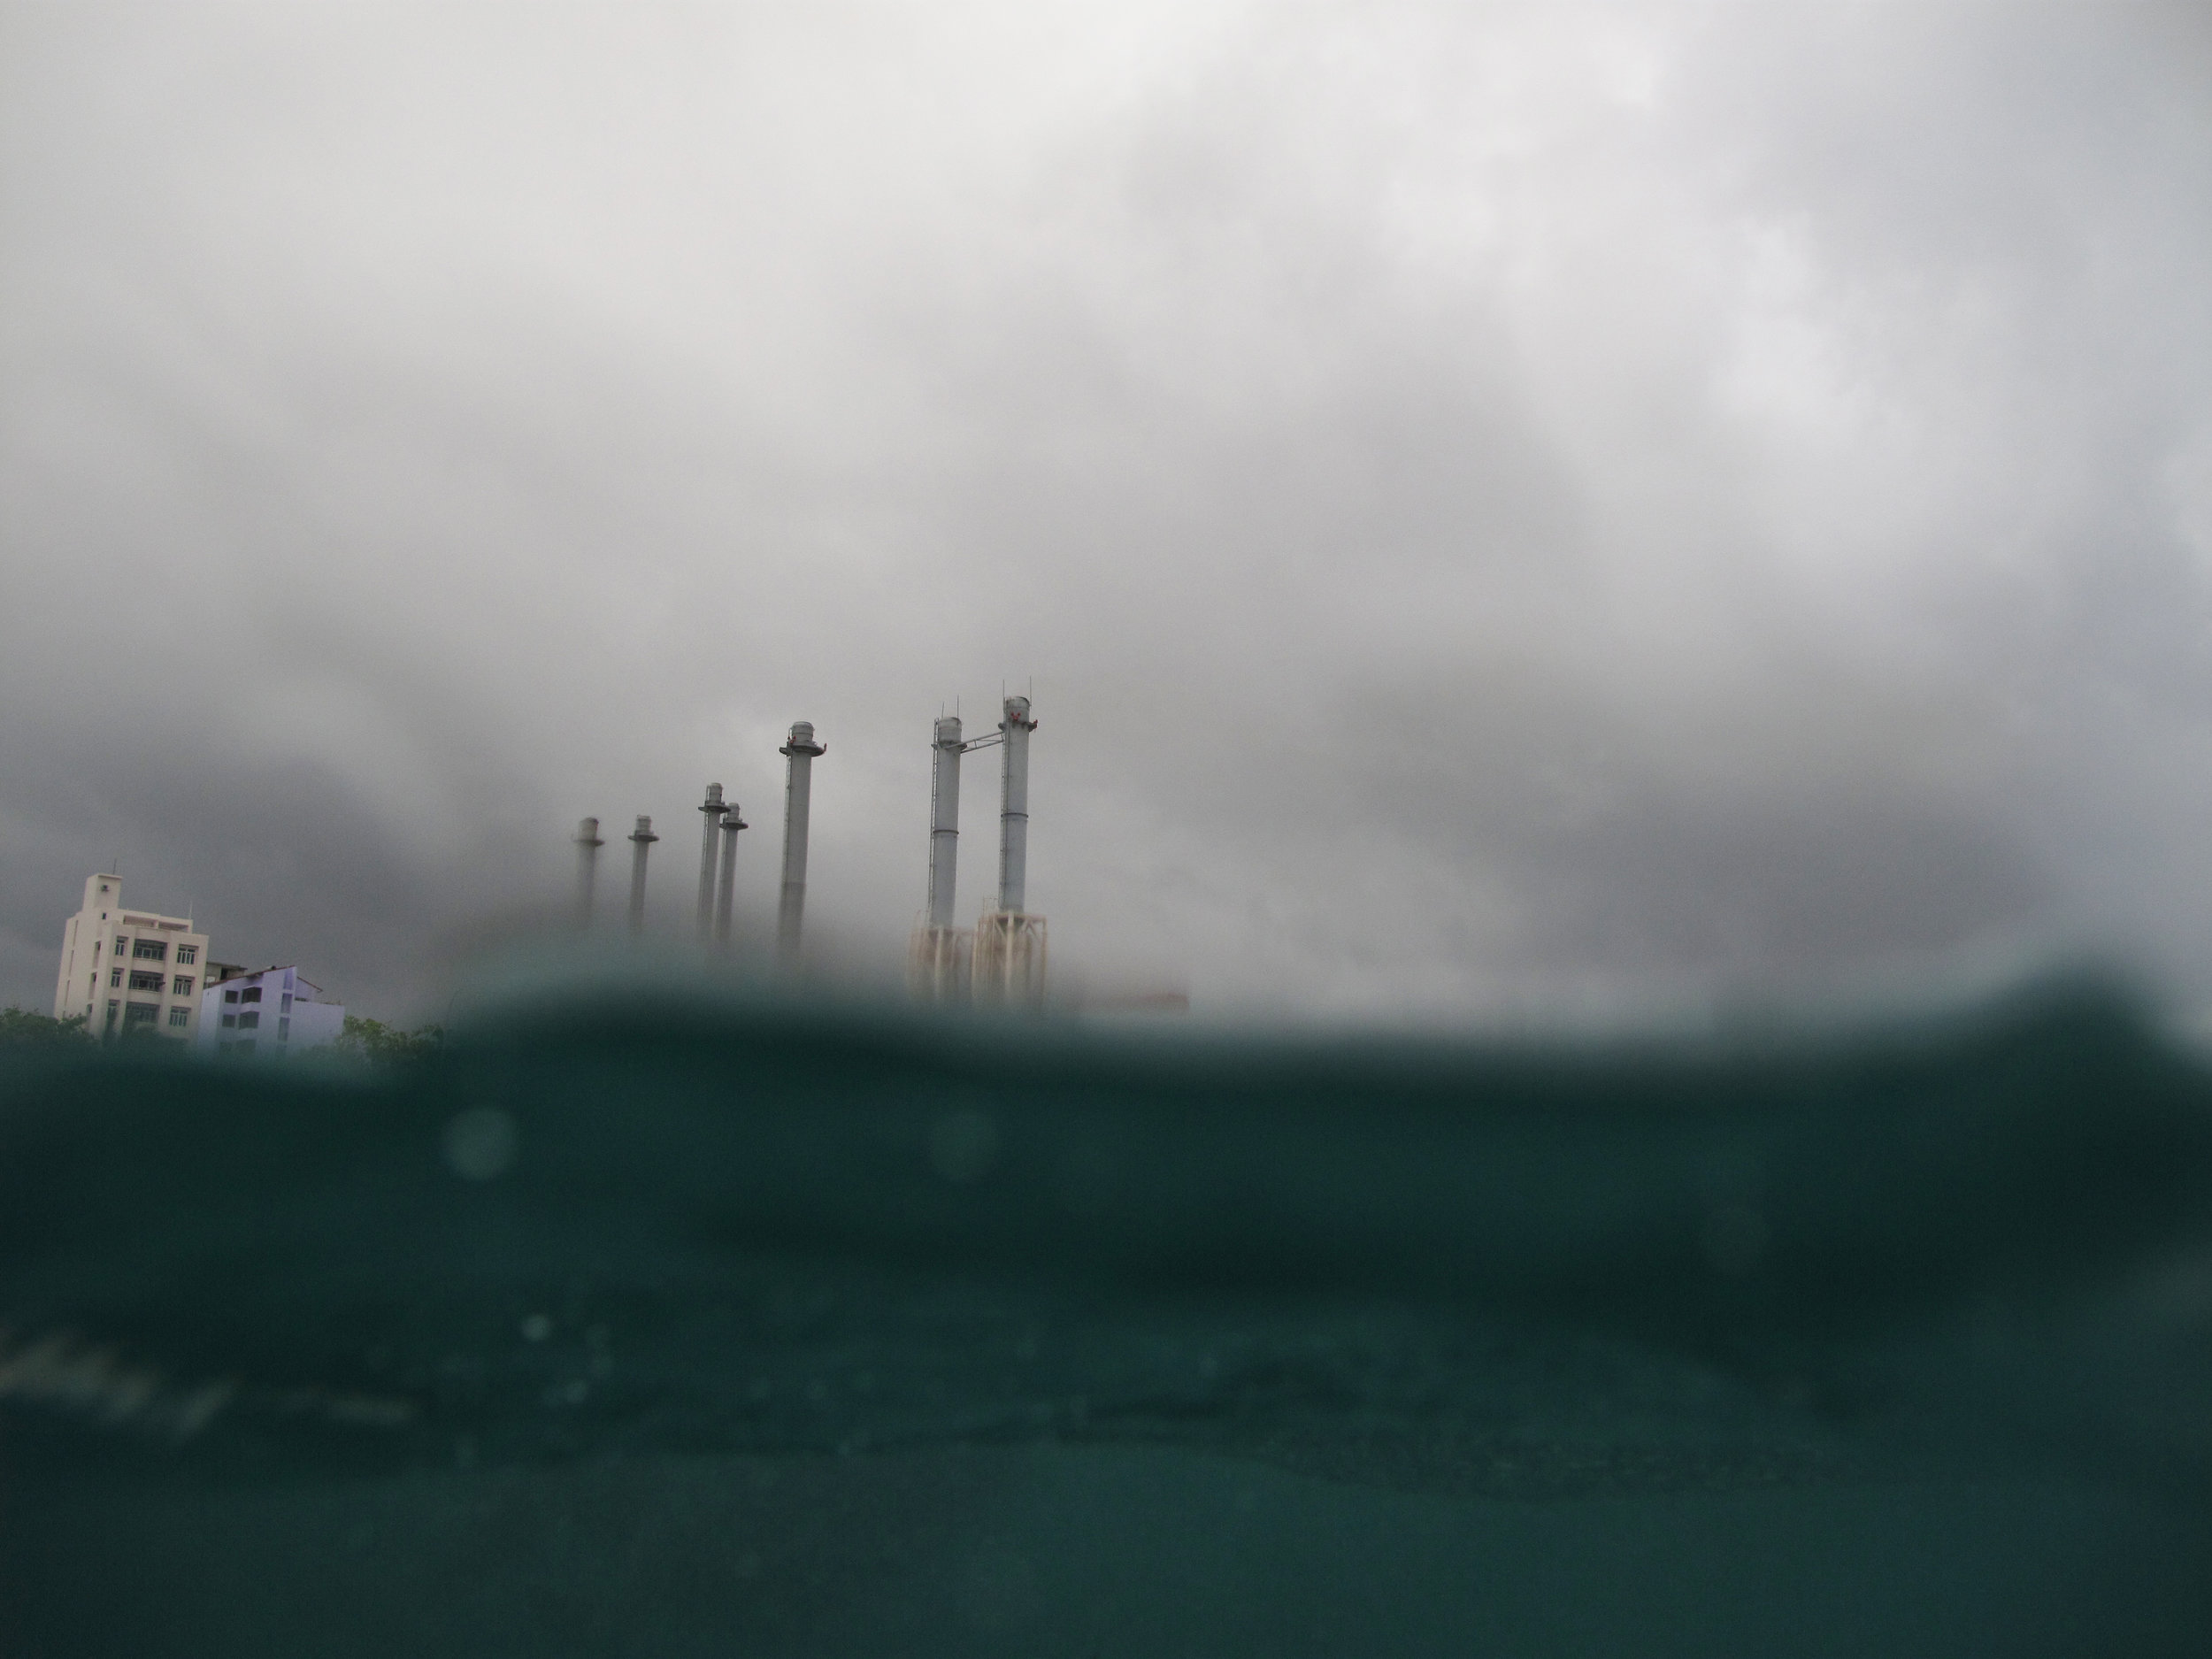 The STELCO towers from the water on a stormy day. Canon PowerShot G10  (2009)